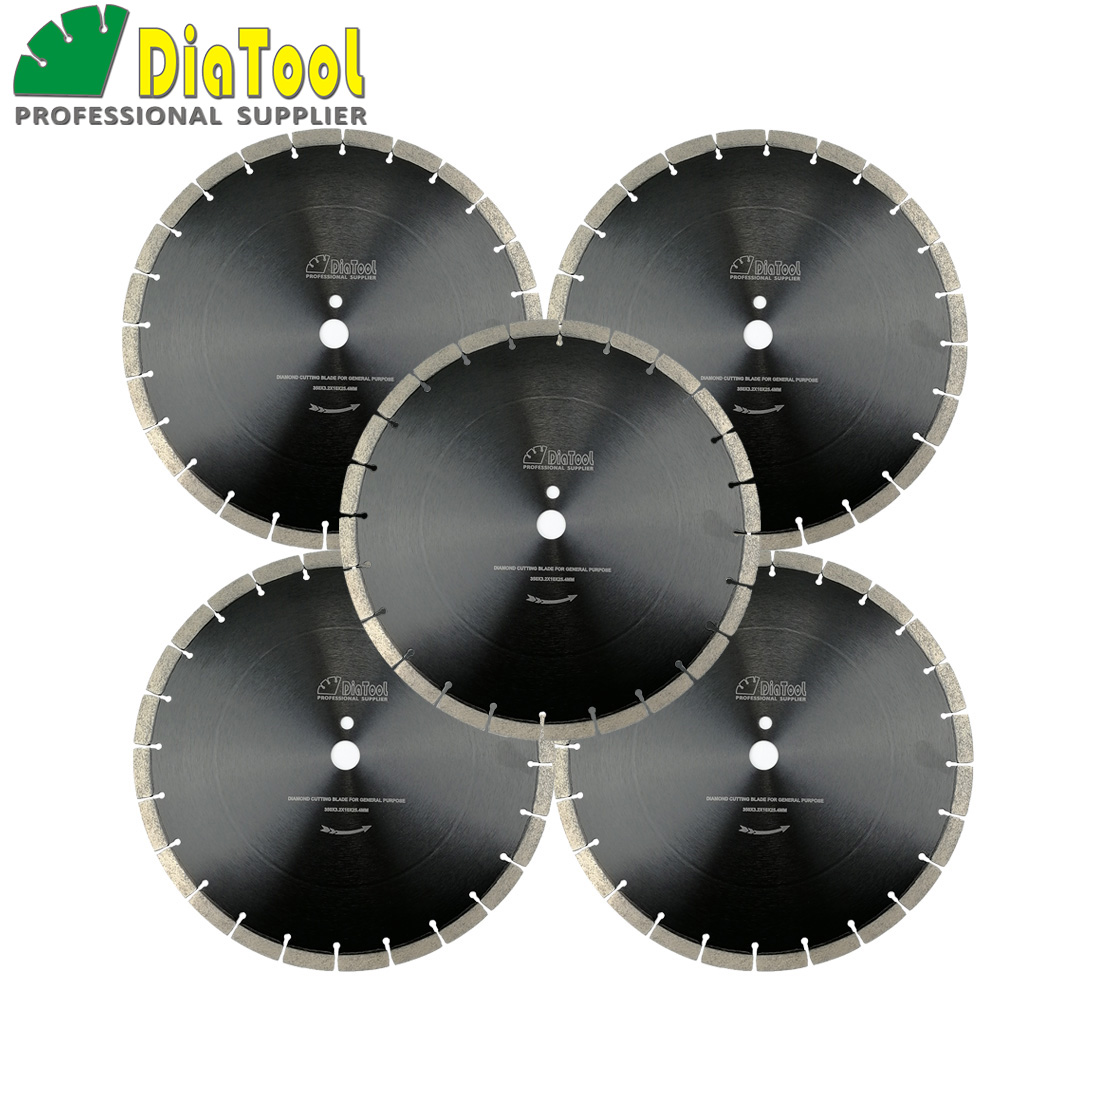 DIATOOL 5pcs/set 14inch Professional segmented Sintered Diamond saw blade for concrete Block Paver Dia 360mm Wet Cutting Disc 2 pcs super thin sintered diamond blade cutting disc for jade agate stone wet grinding with cooling water jgs031